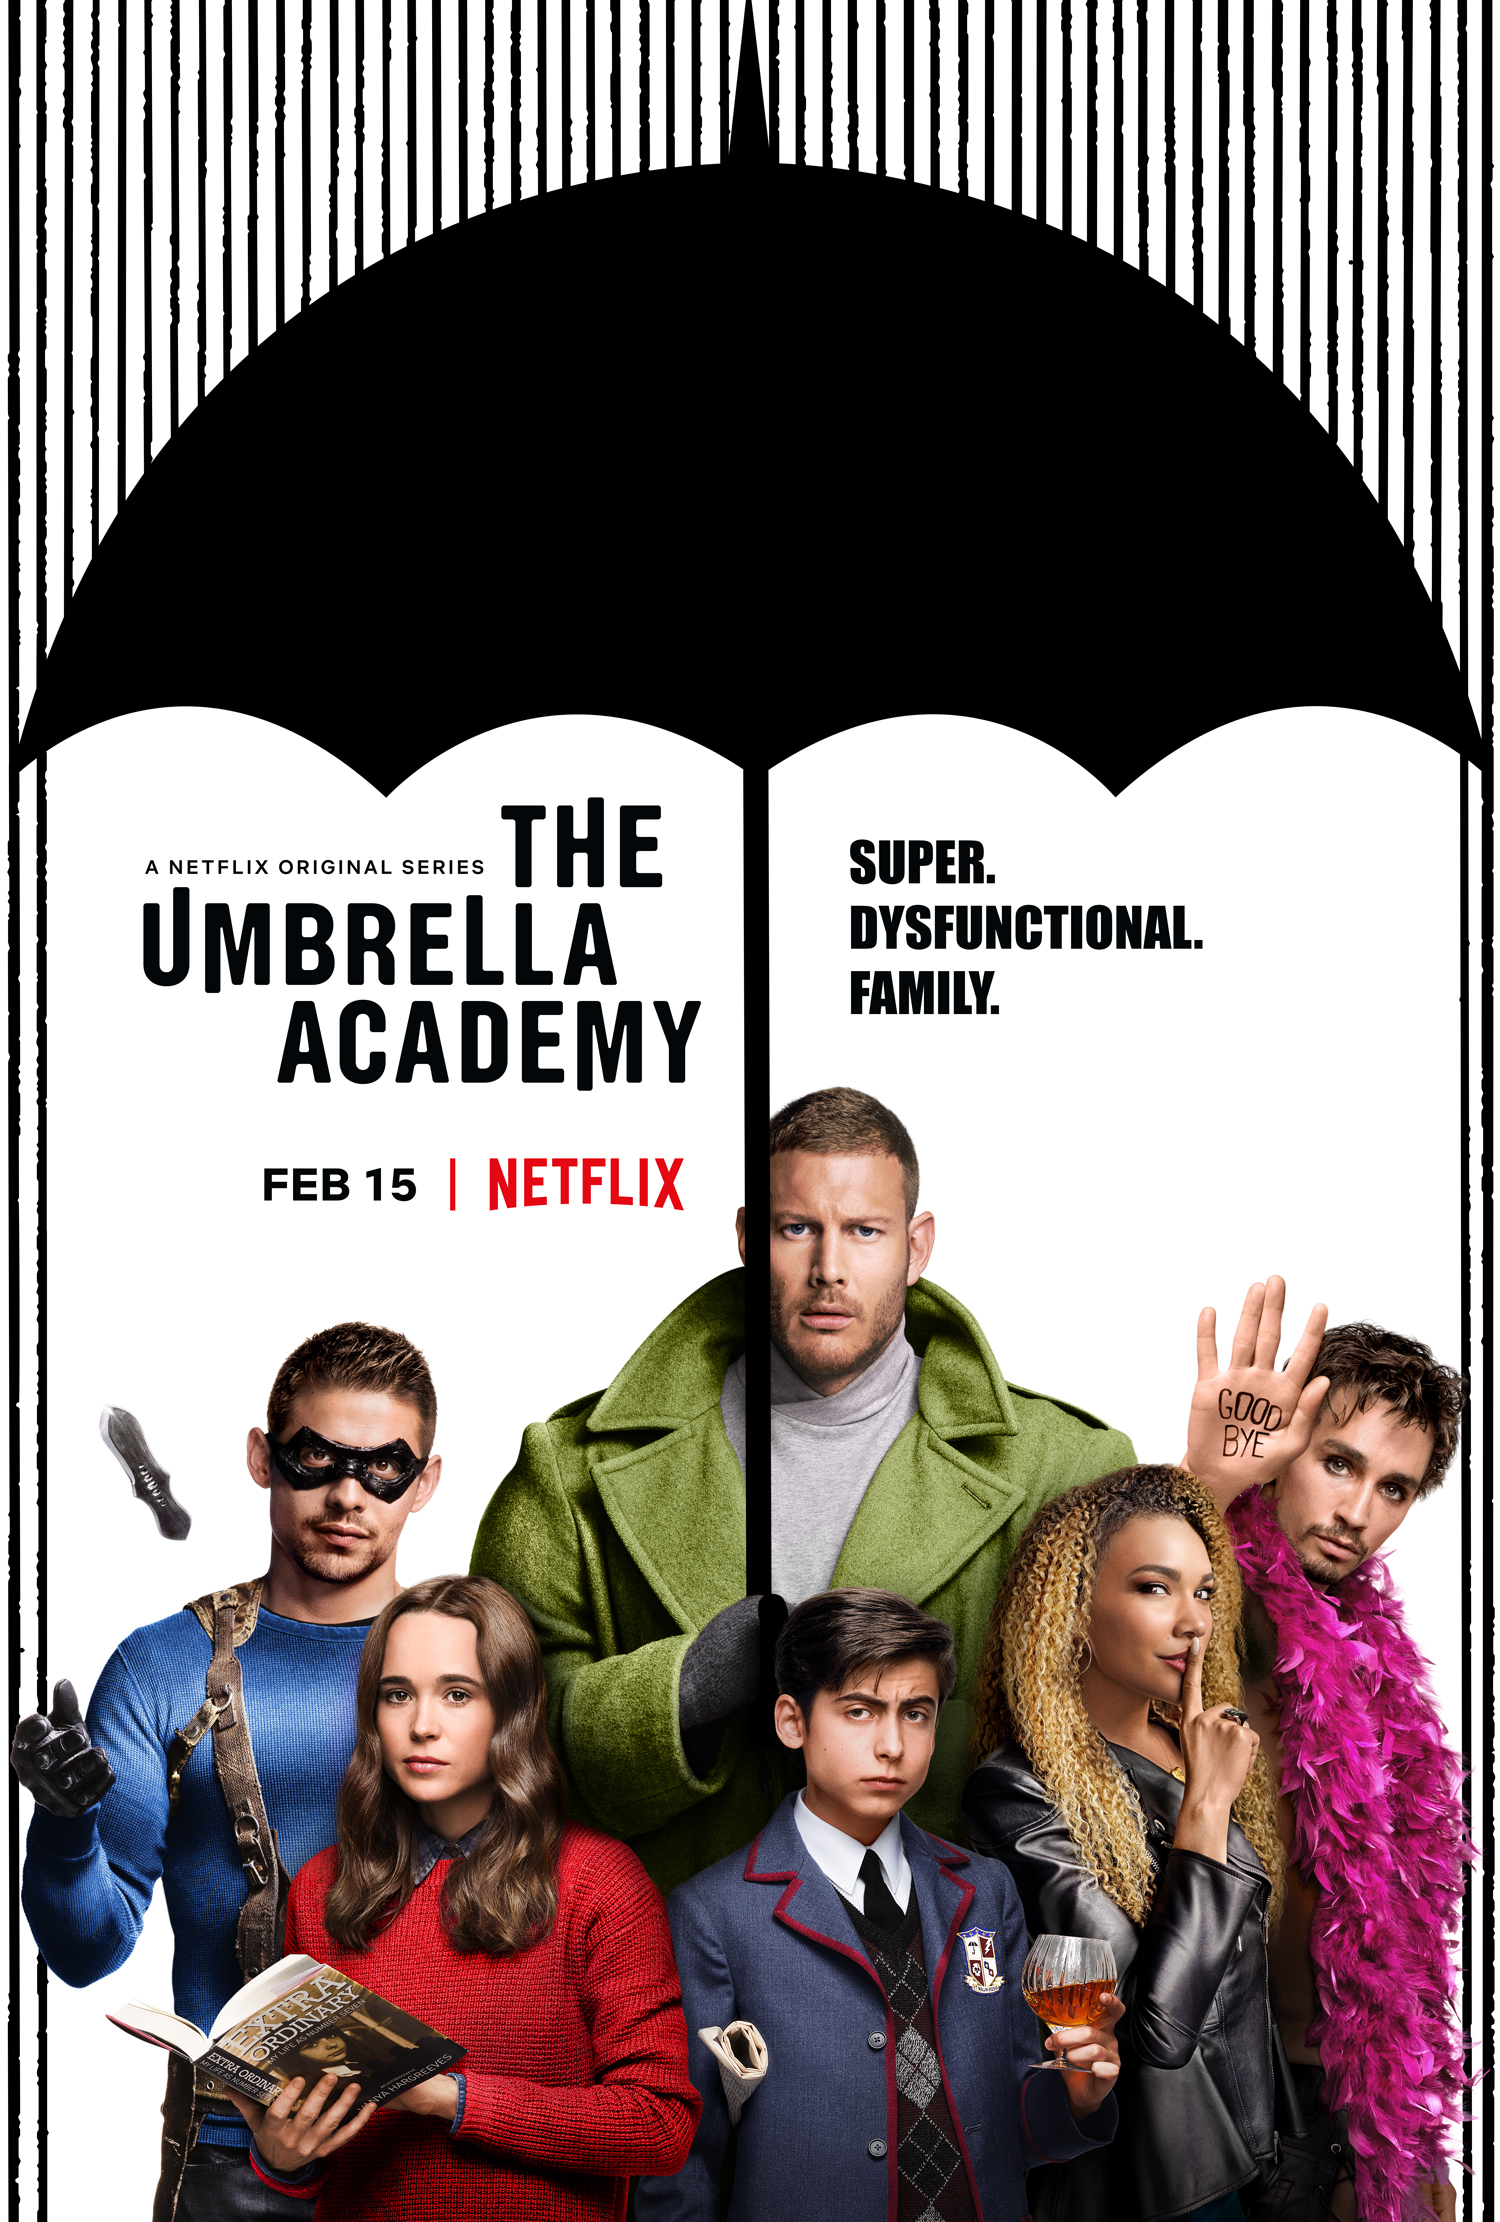 f8983ca3c9fdd The Umbrella Academy (TV Series 2019– ) - IMDb